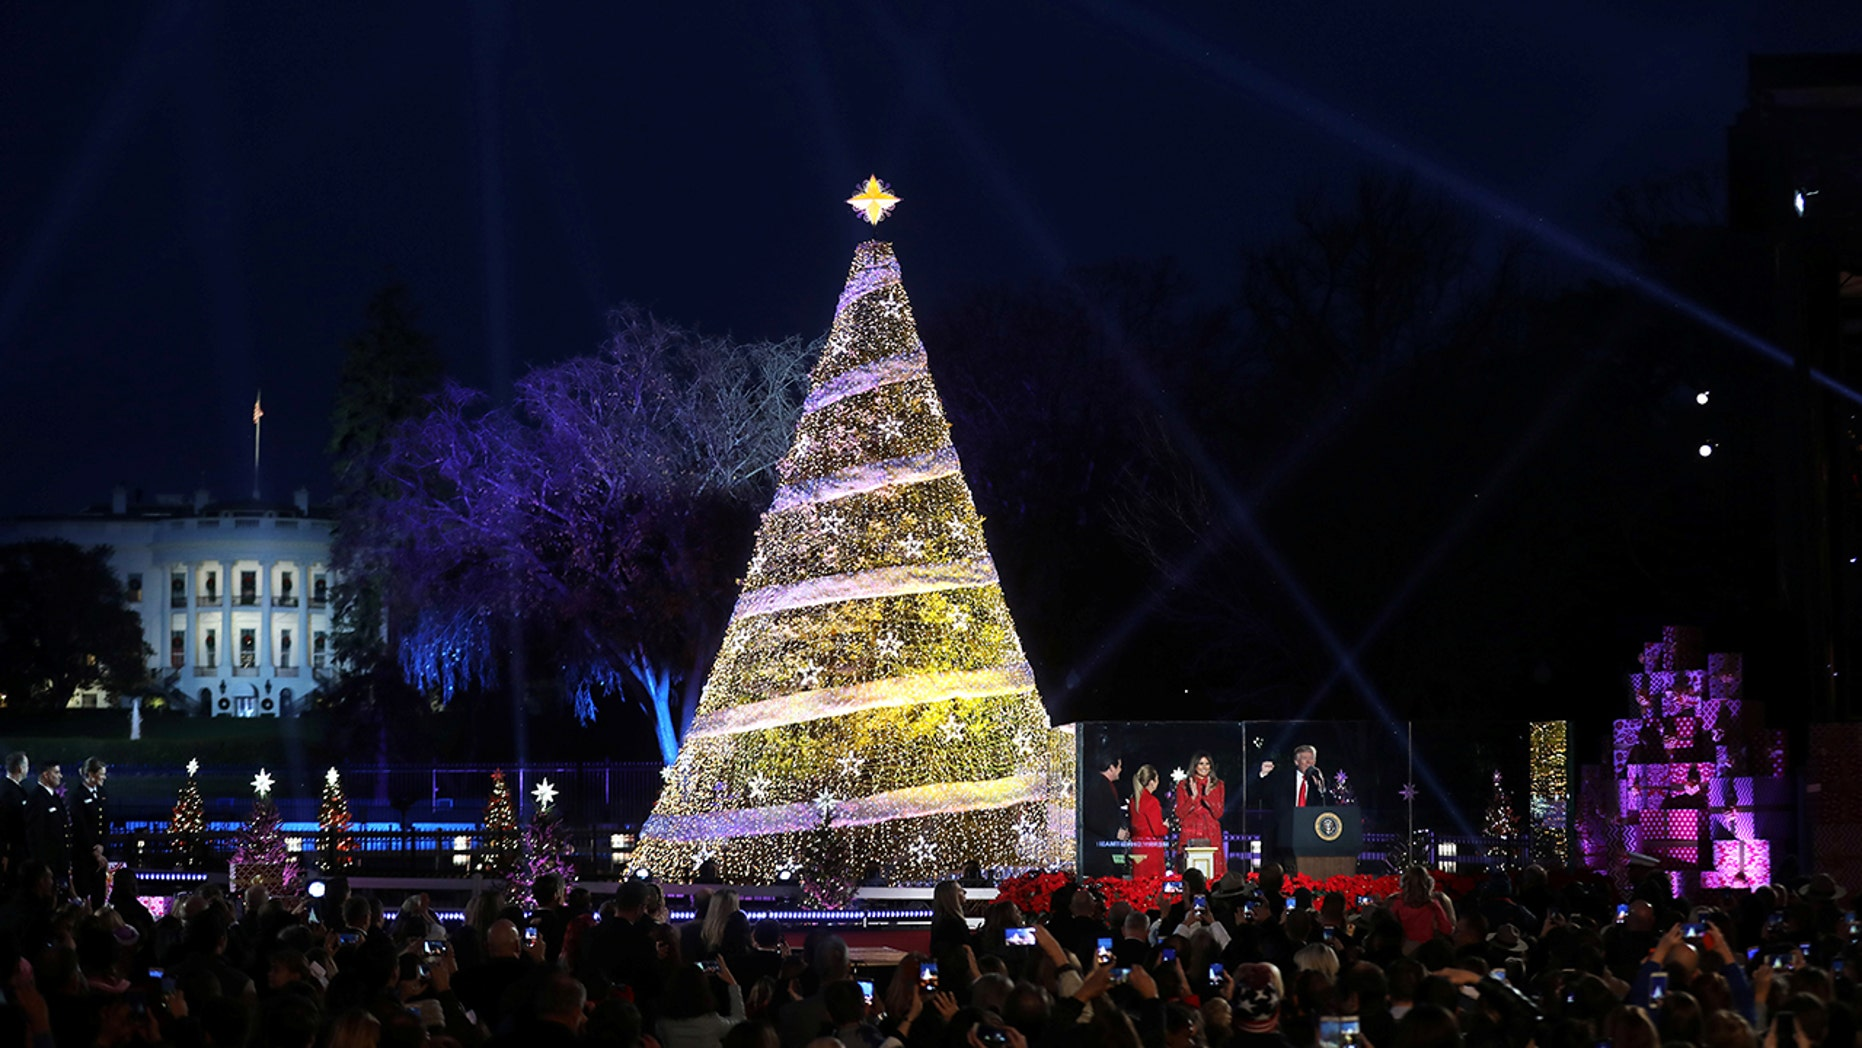 The Christmas tree lighting in Washington, D.C.